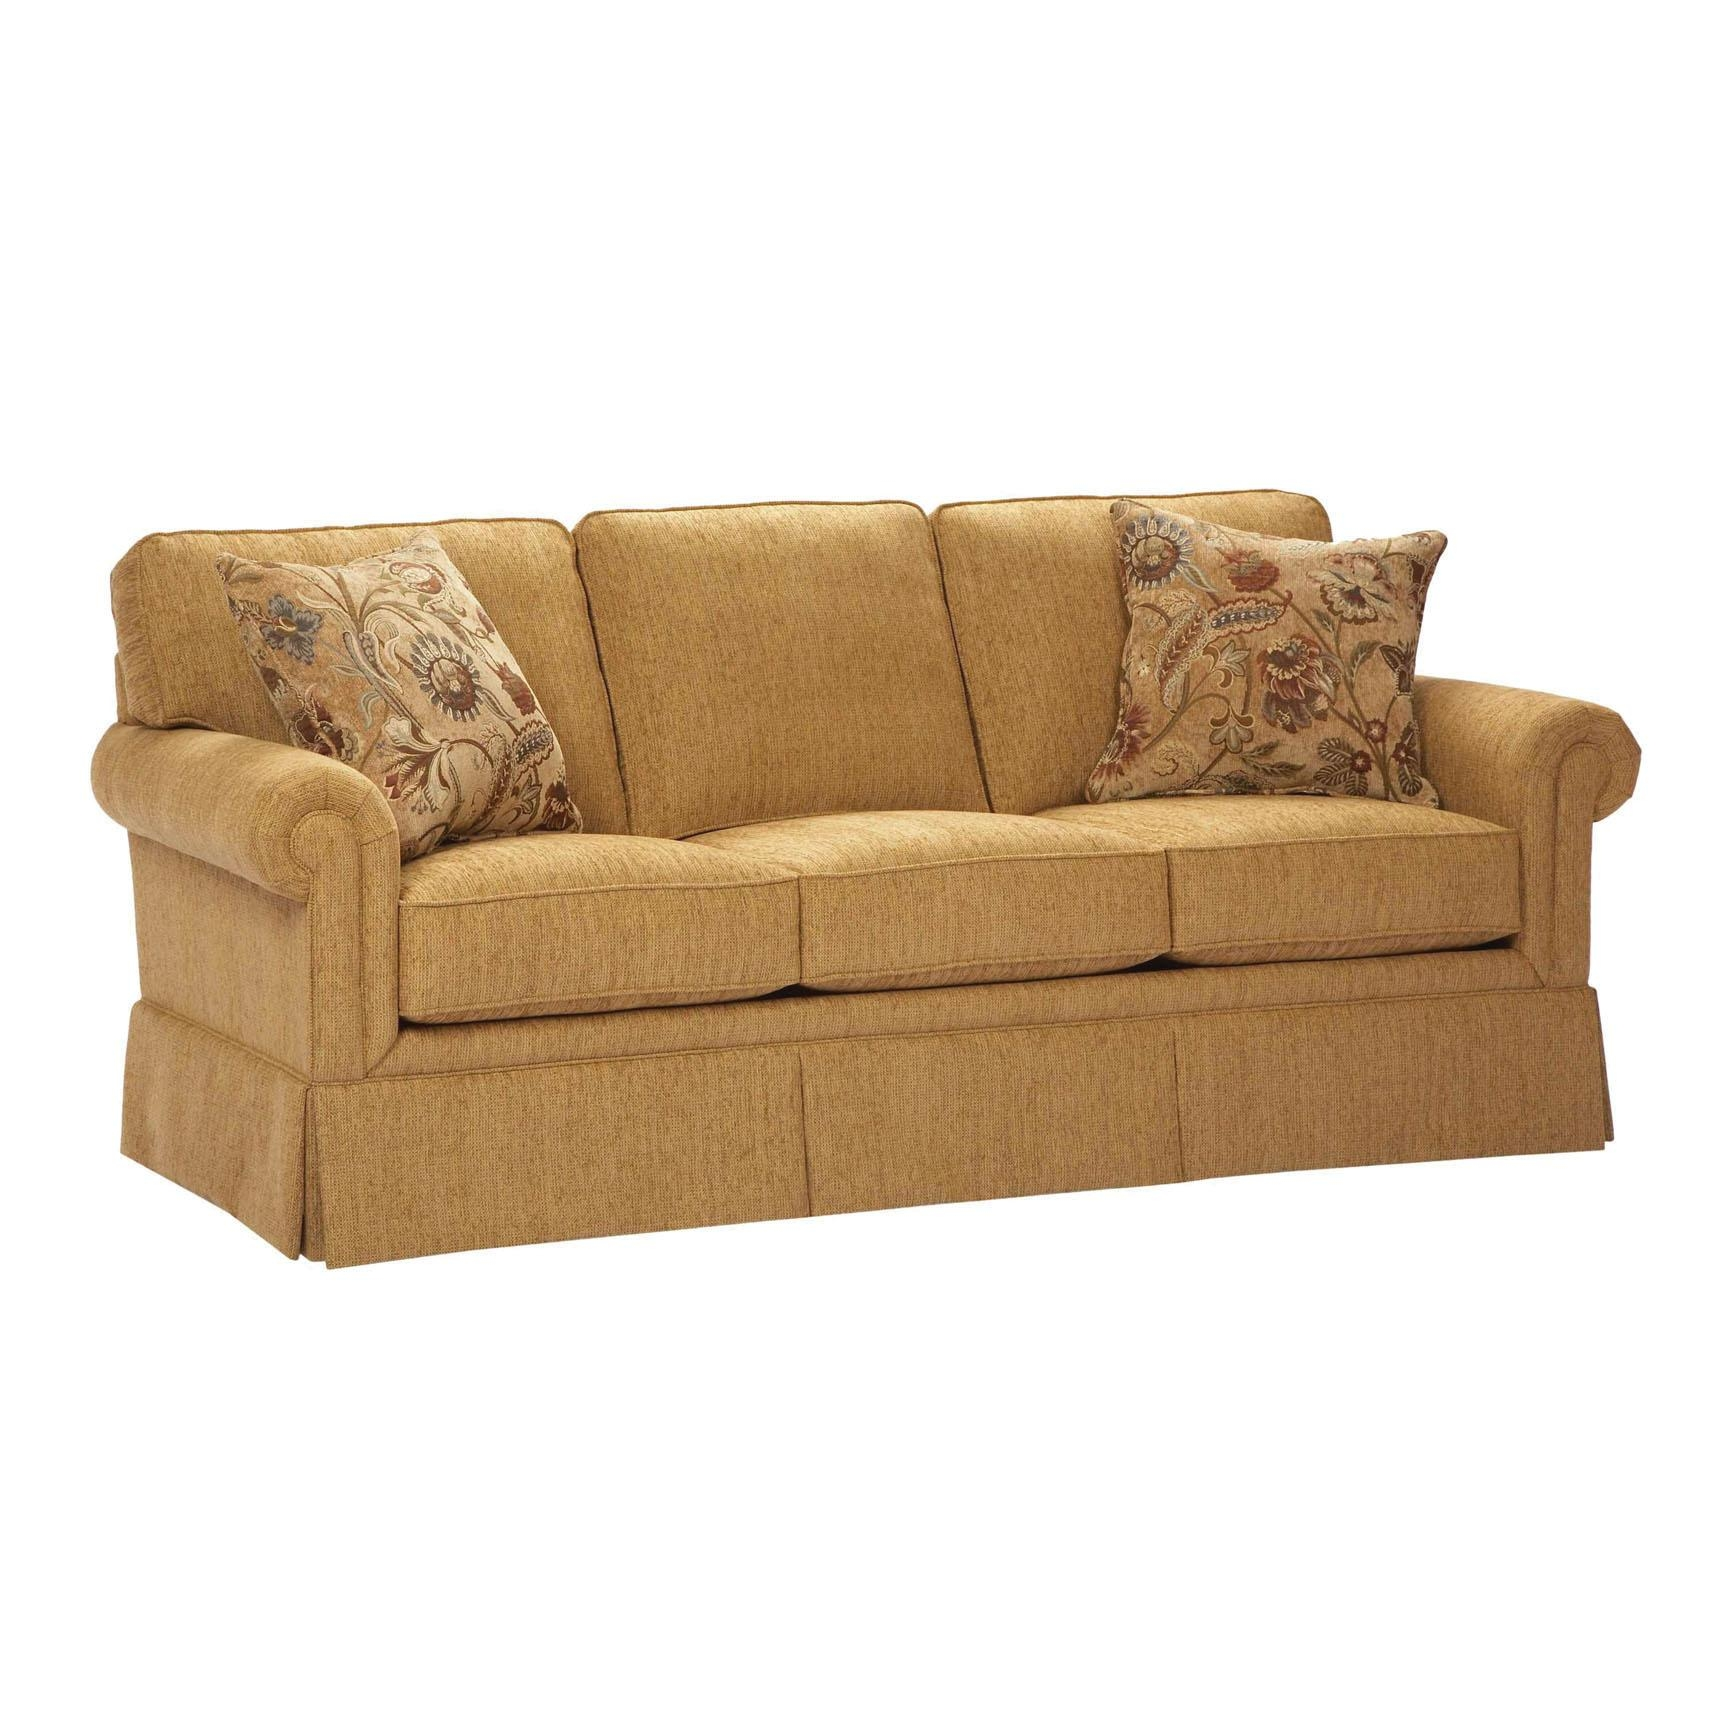 Broyhill Tanners Choice Zachary Leather Sofa Bh L7902 3 With Broyhill Perspectives Sofas (View 11 of 20)